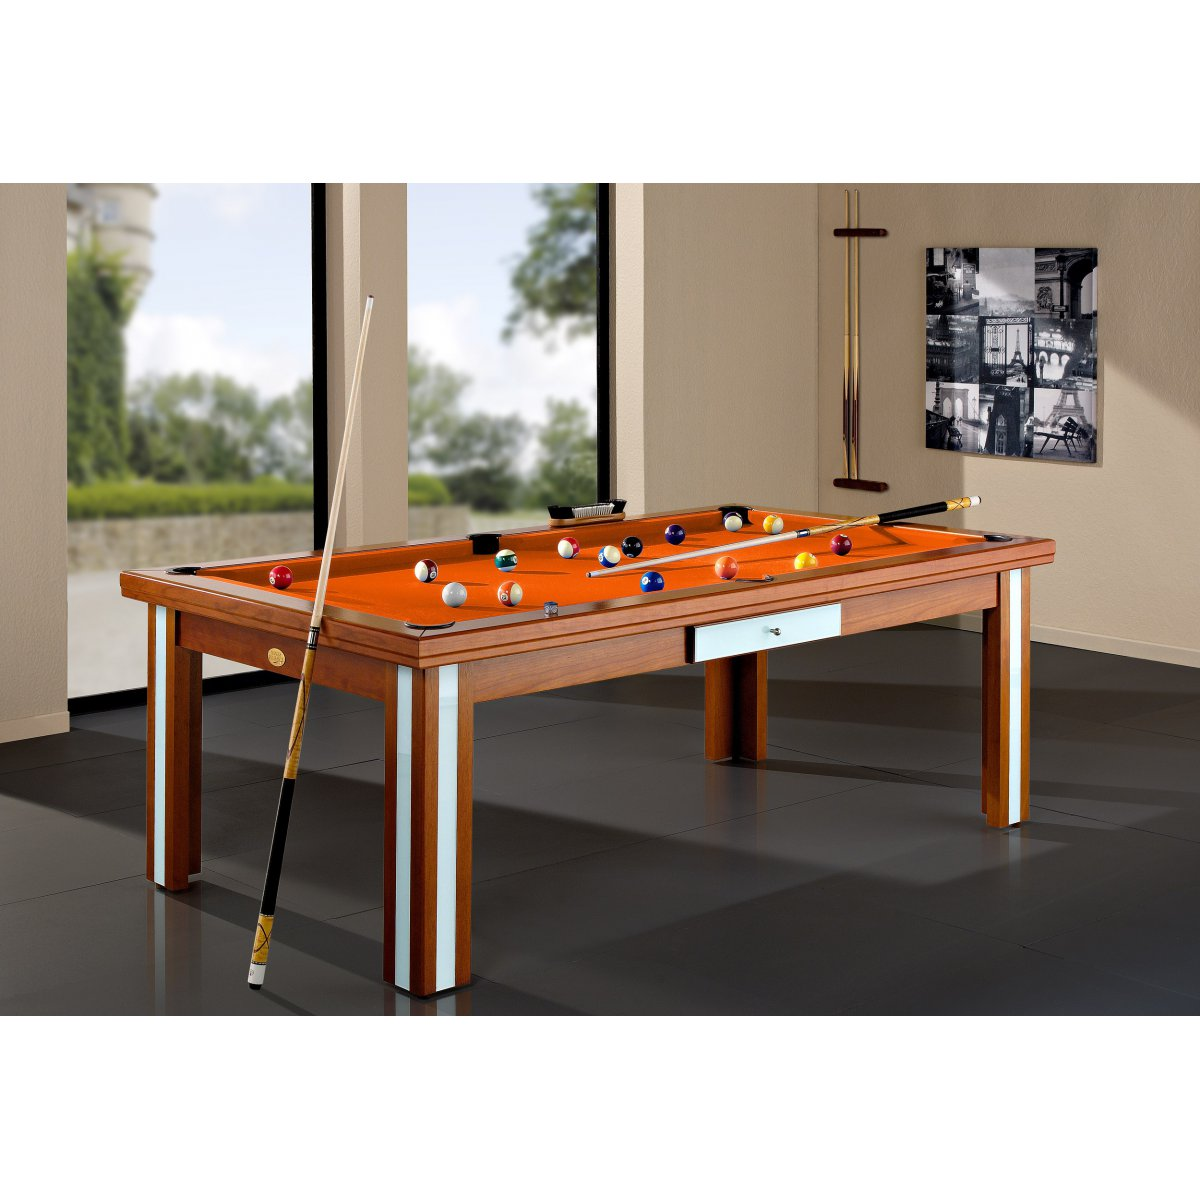 Table billard convertible milan verre - Table de billard transformable en table de salle a manger ...